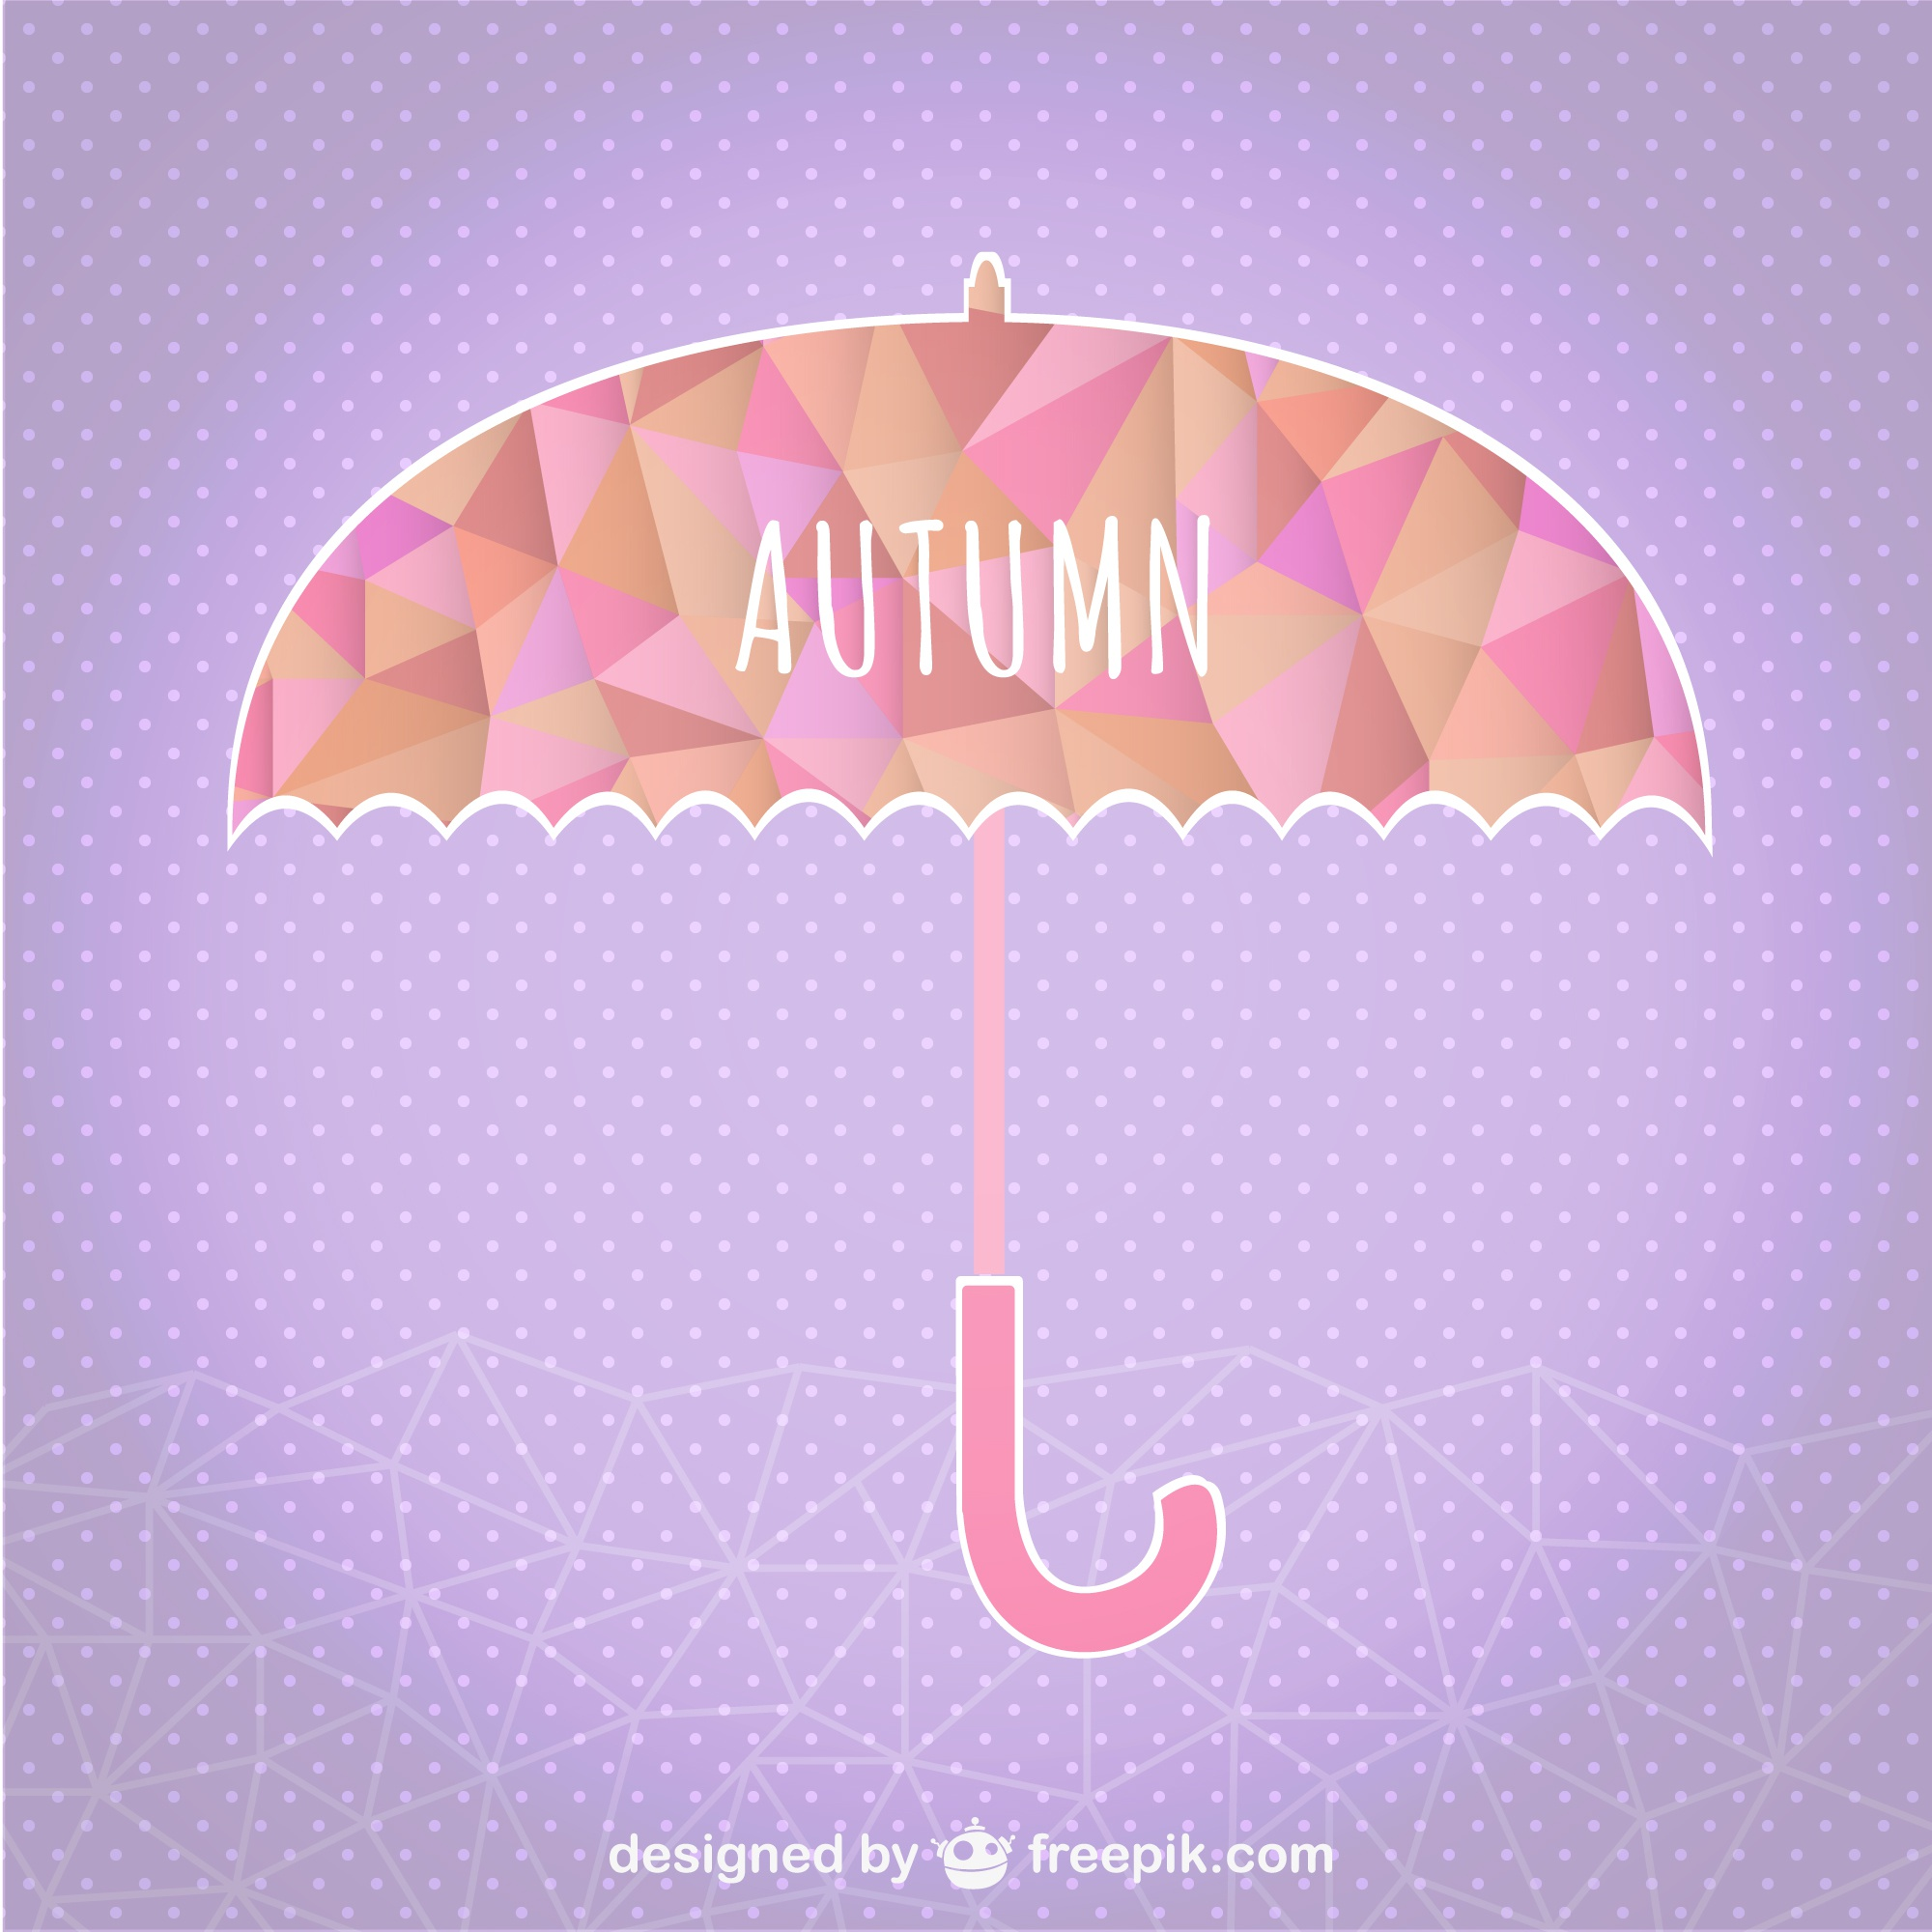 Autumn umbrella geometric template